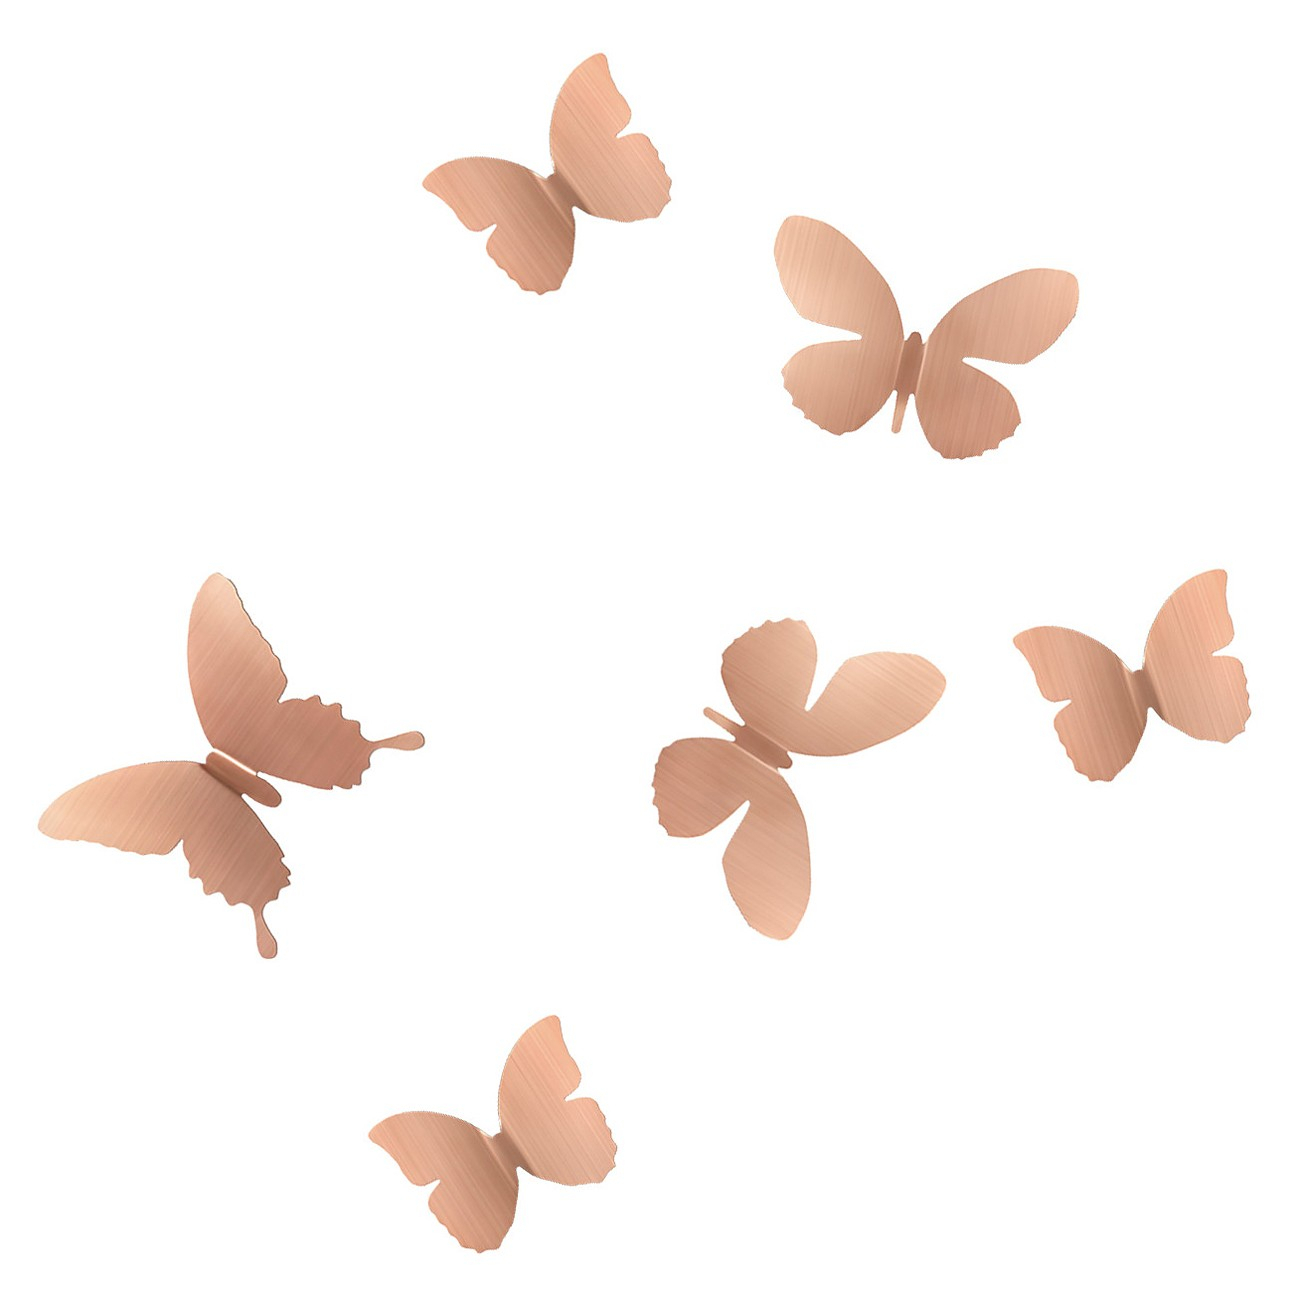 Mariposa Metal Wall Decor (Copper) - Umbra | Design Is This intended for Mariposa 9 Piece Wall Decor (Image 15 of 30)